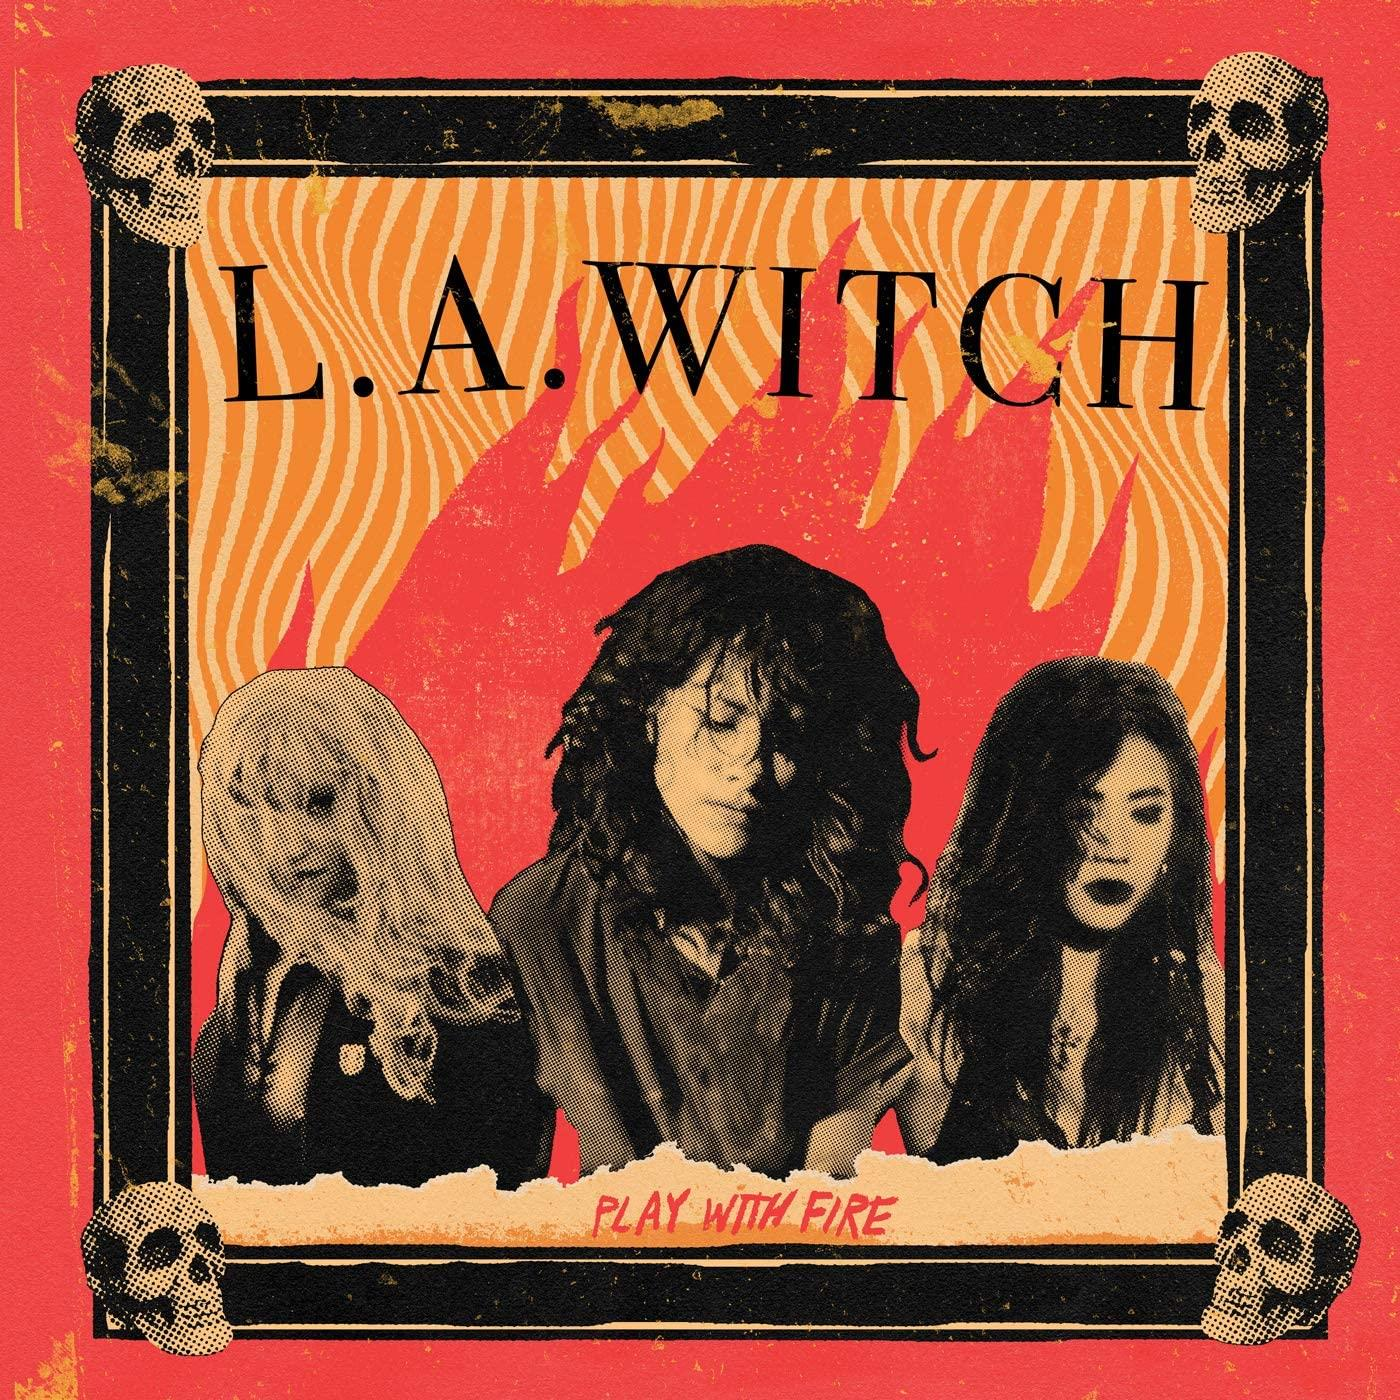 L.A. Witch - Play With Fire [LP]